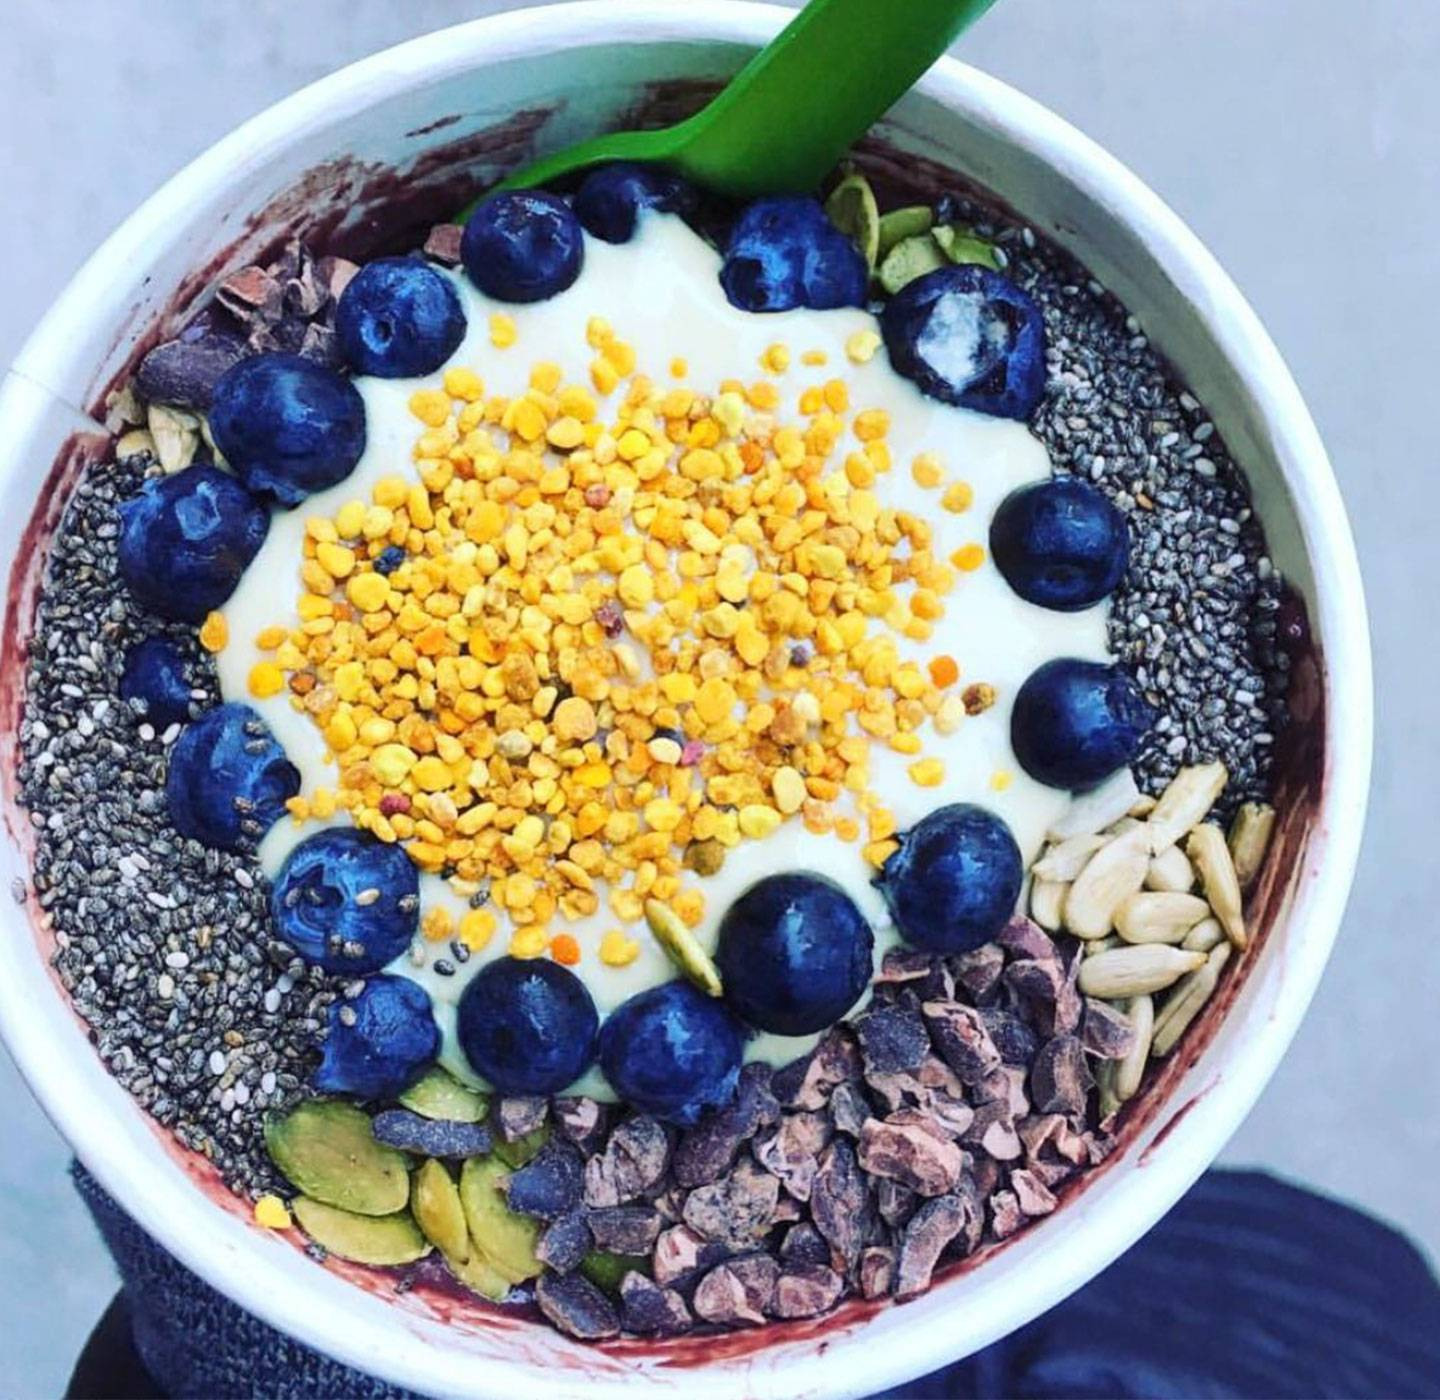 20170211b January Detox: Healthy Eateries in Chicago's River North